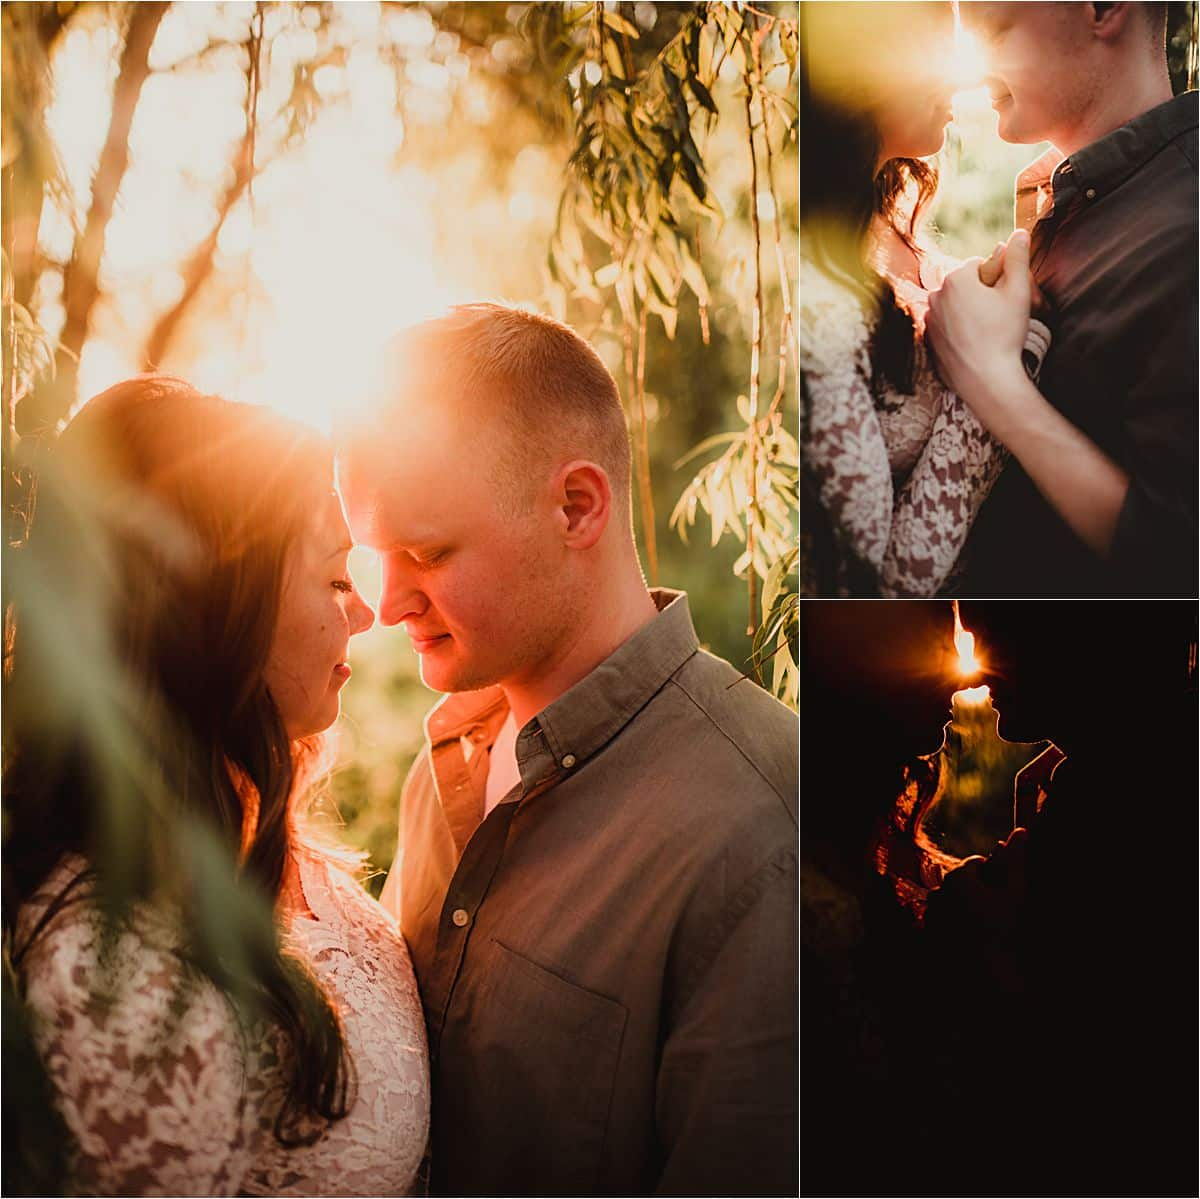 Romantic Sunset Engagement Session Close Up Couple